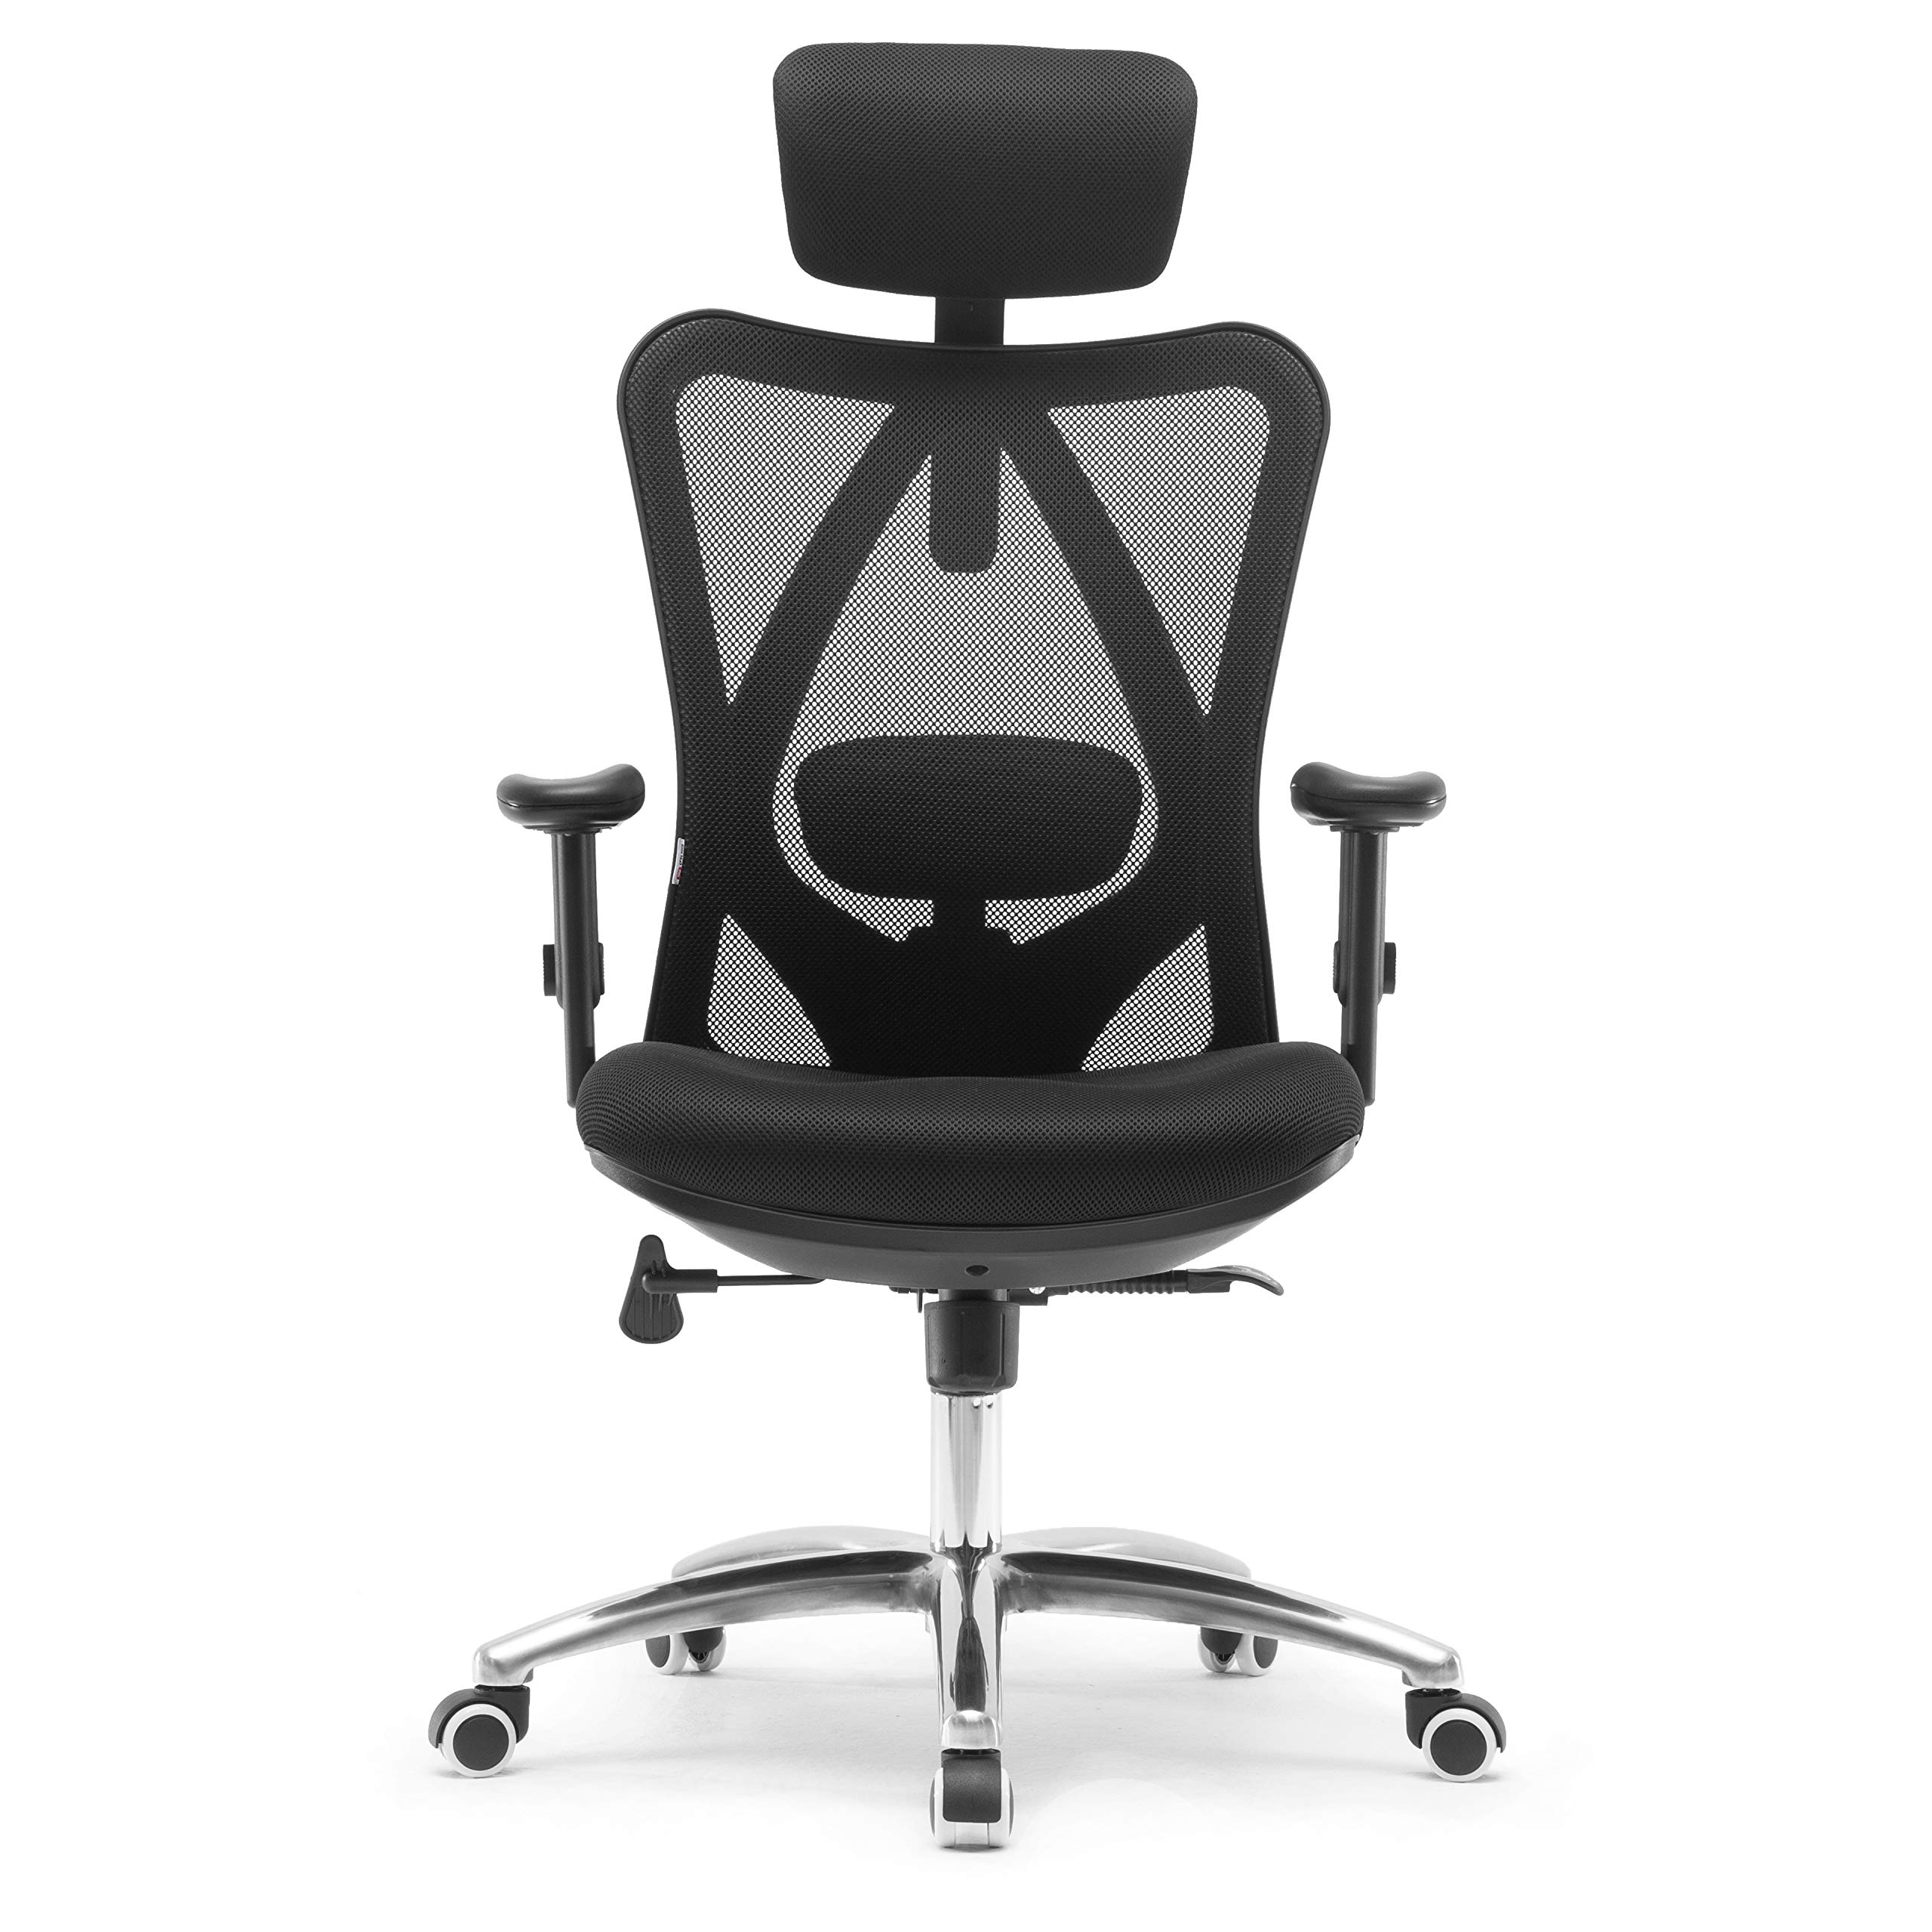 Sihoo Ergonomics Office Chair Computer Chair Desk Chair, Adjustable Headrests Chair Backrest and Armrests Mesh